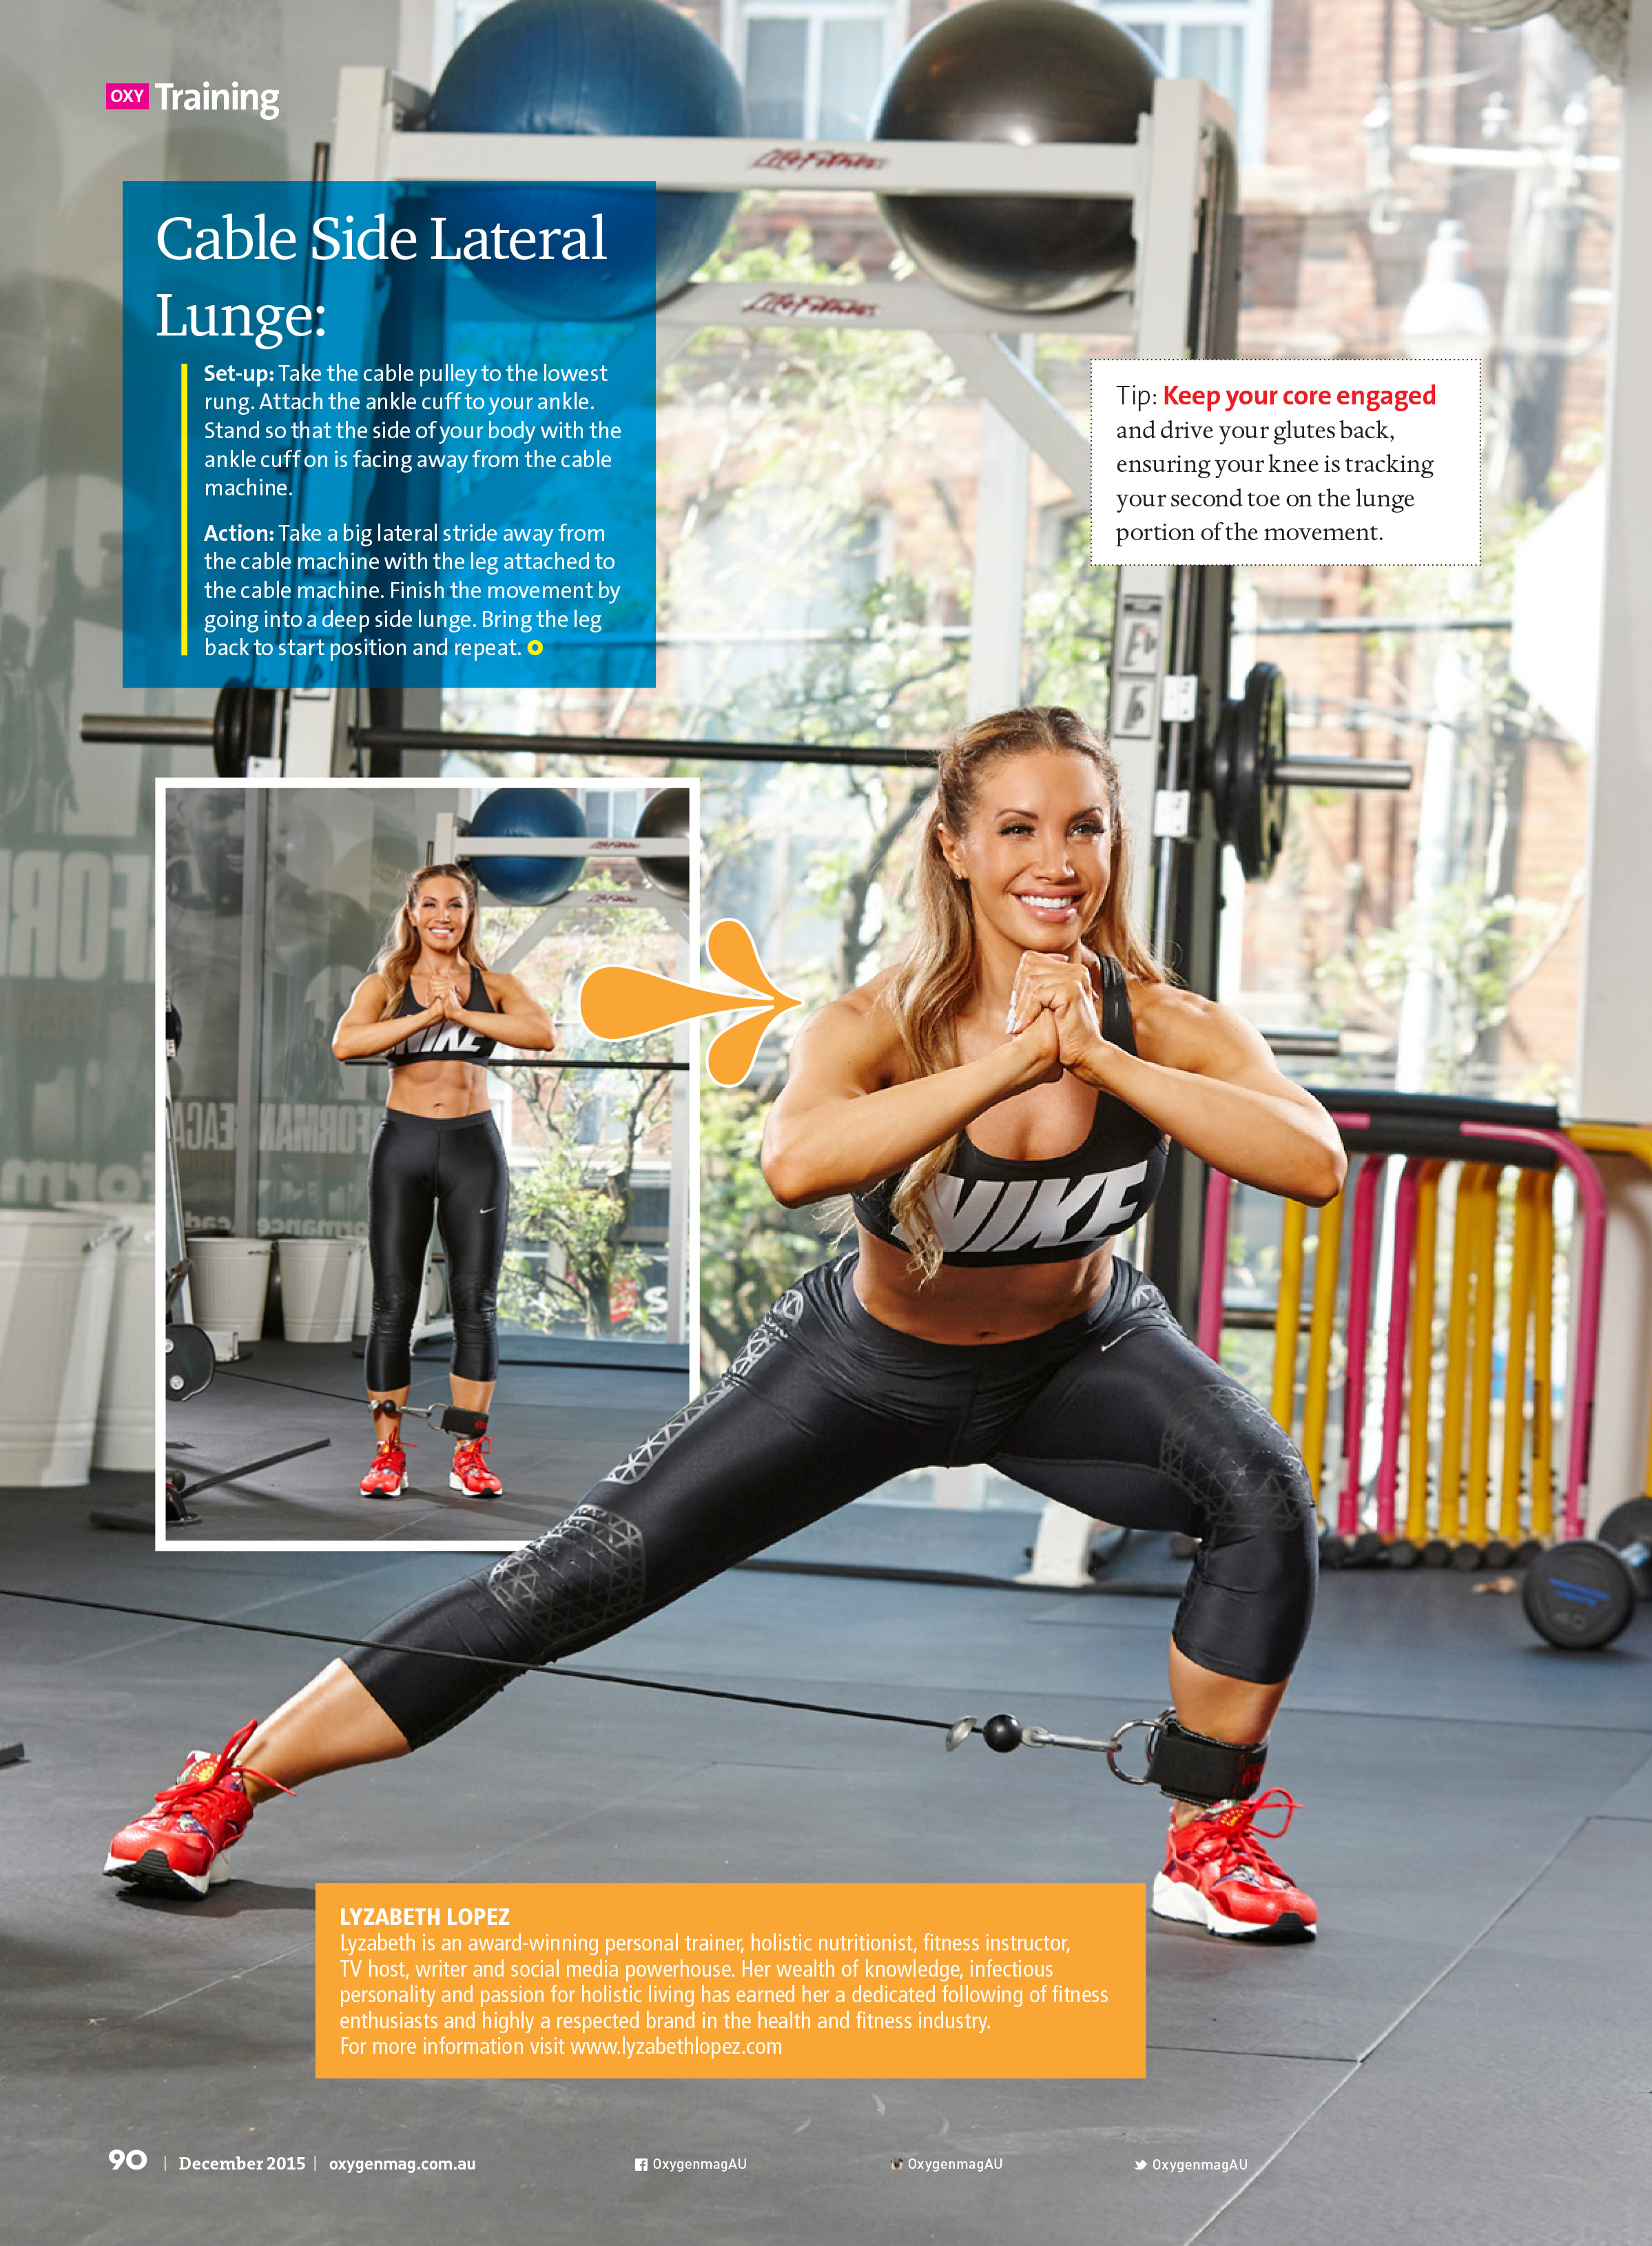 086-090_TRAINING_GLUTE_CABLE_WORKOUT_OXY81#0003